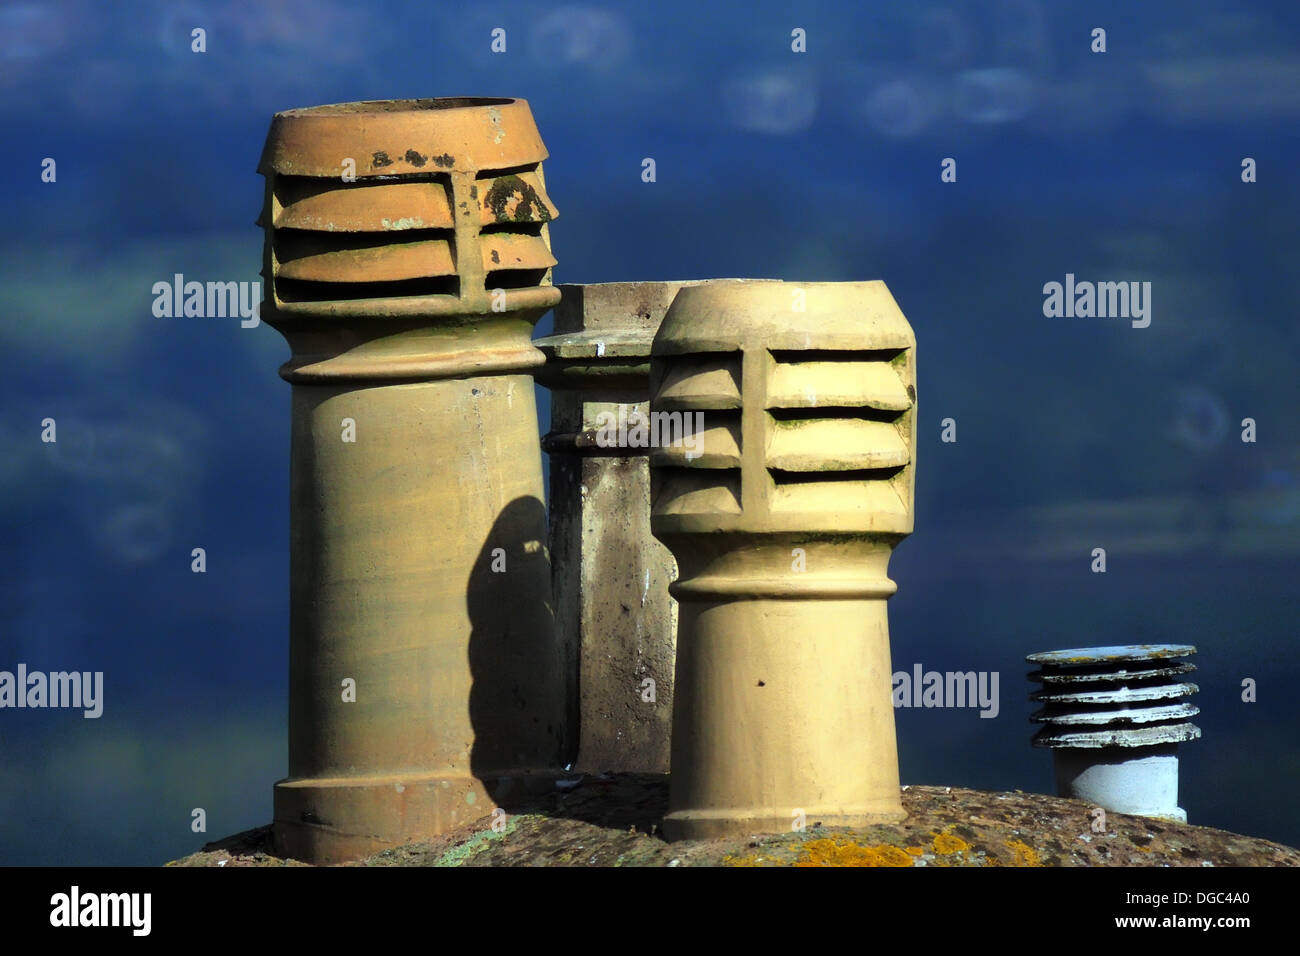 Chimney pots with louvered tops - Stock Image